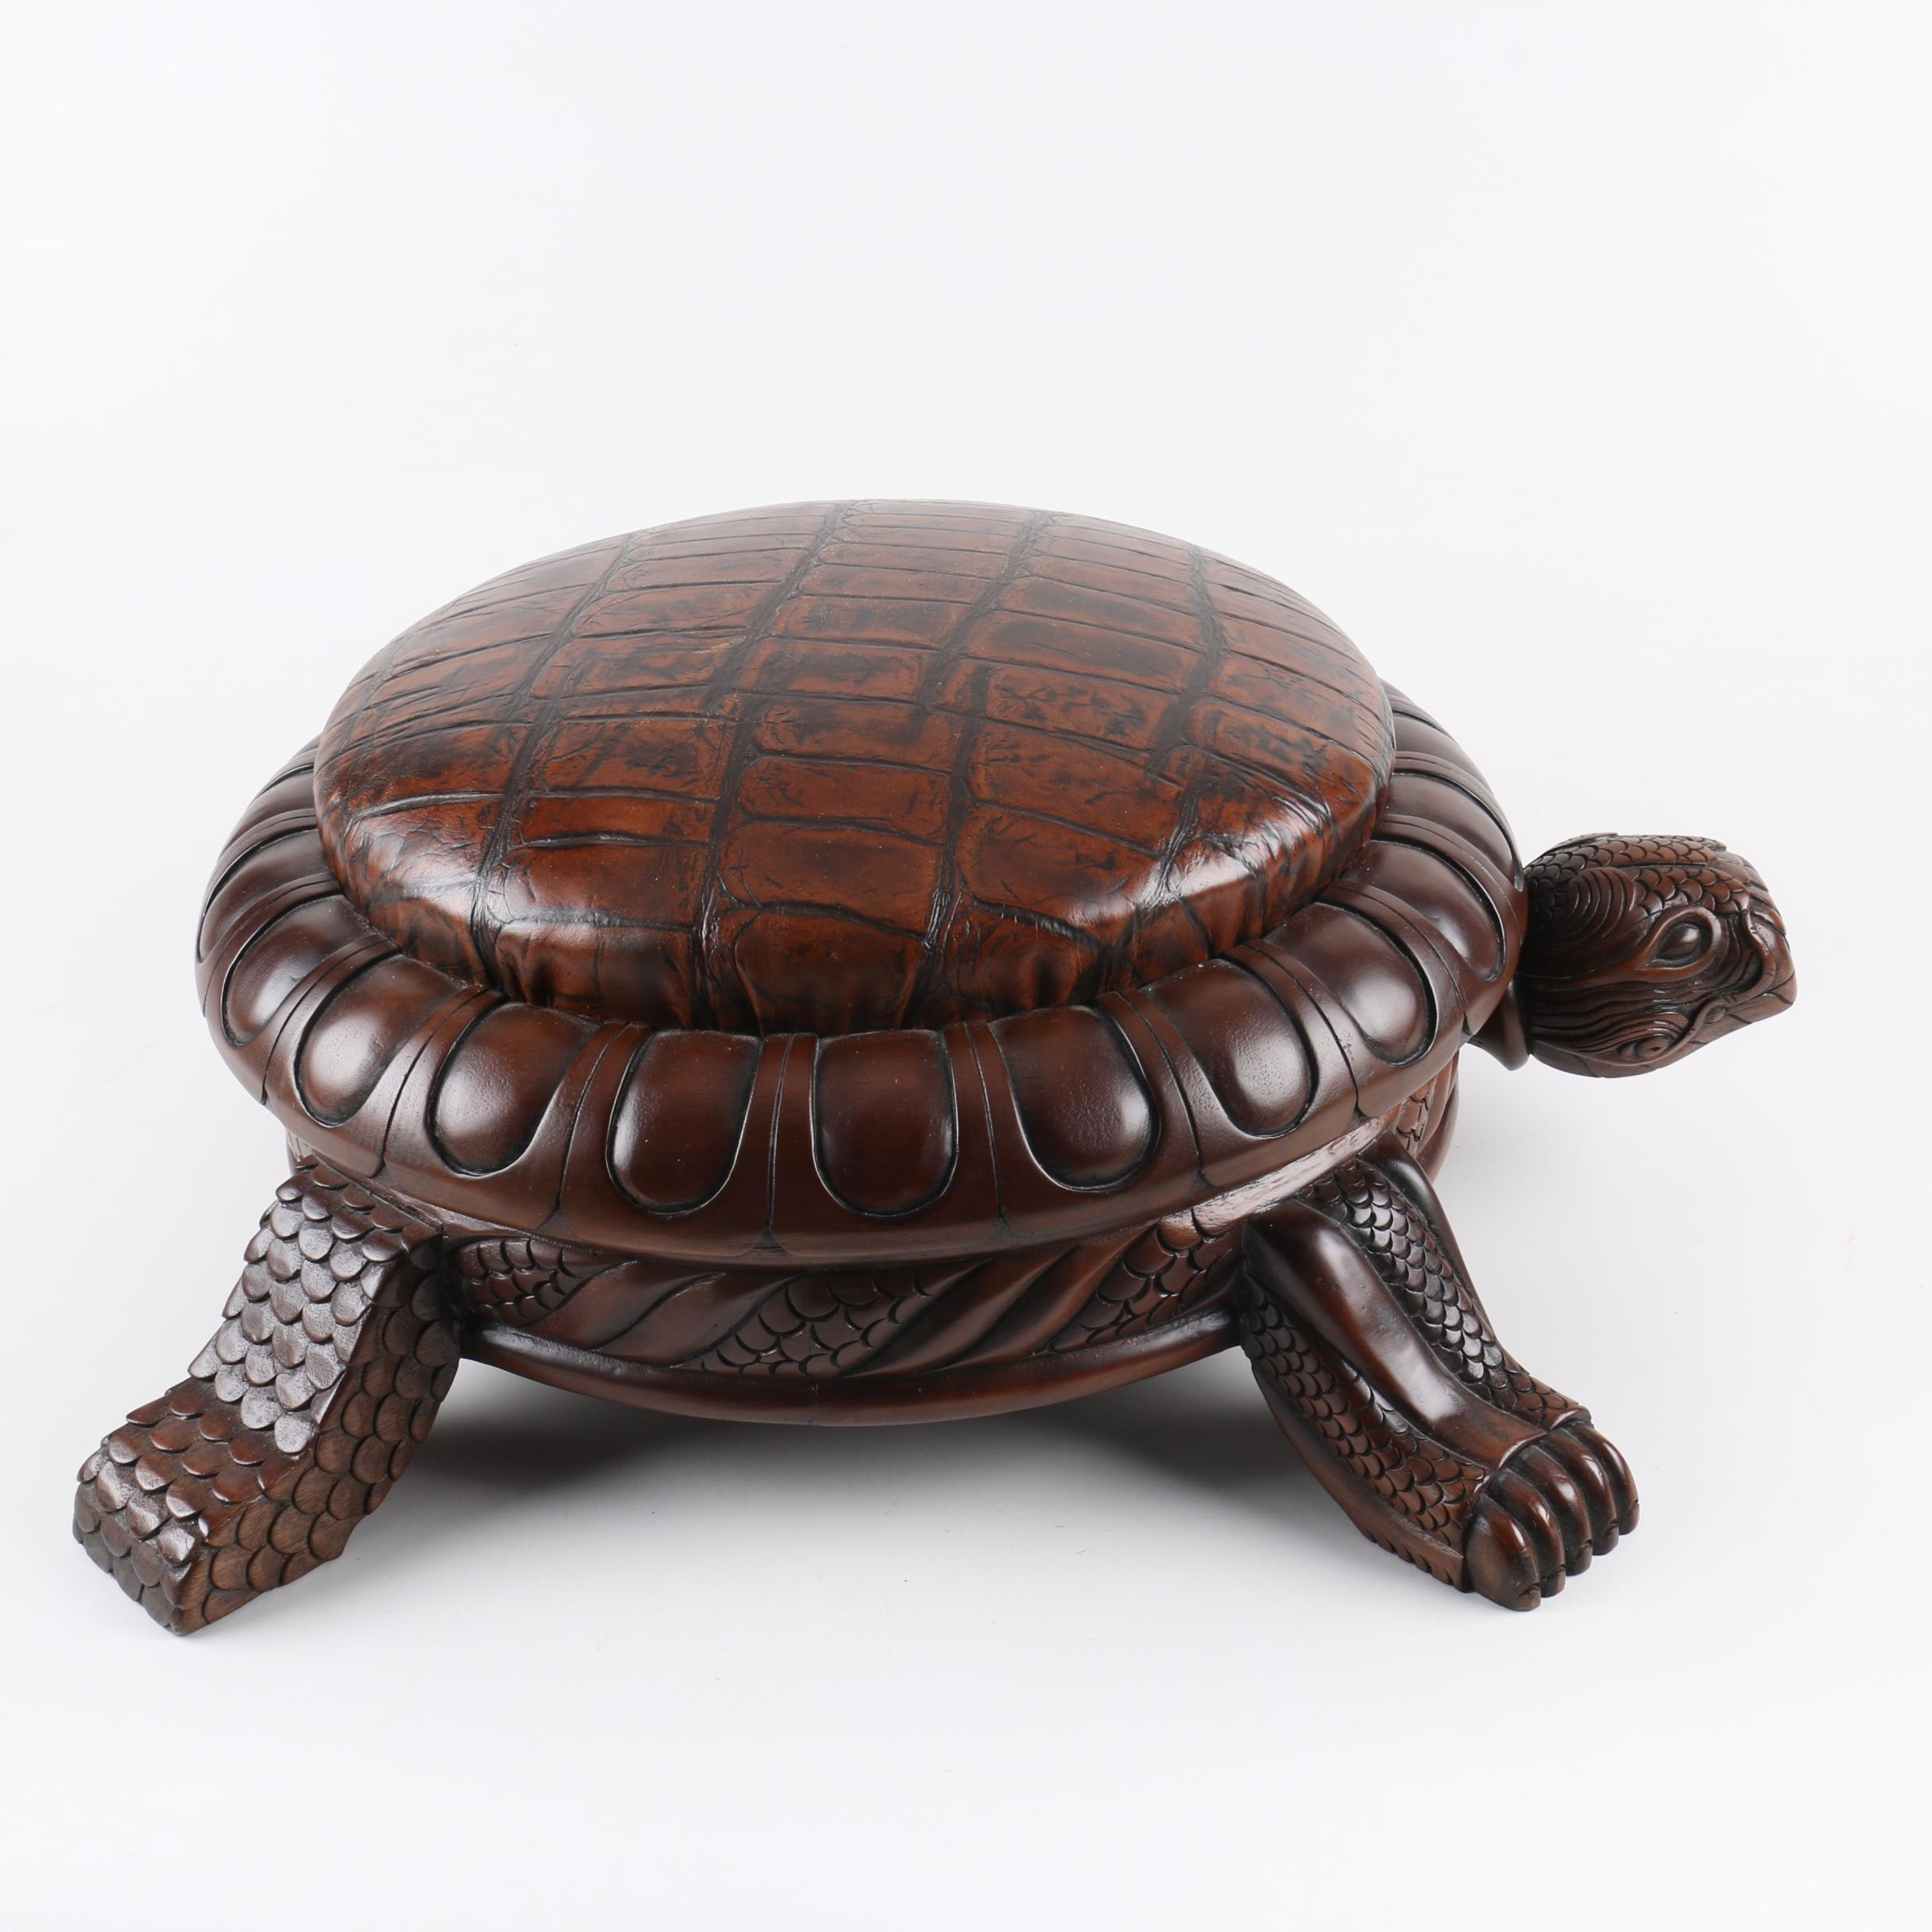 Carved Tortoise and Leather Footstool by Old Hickory Tannery